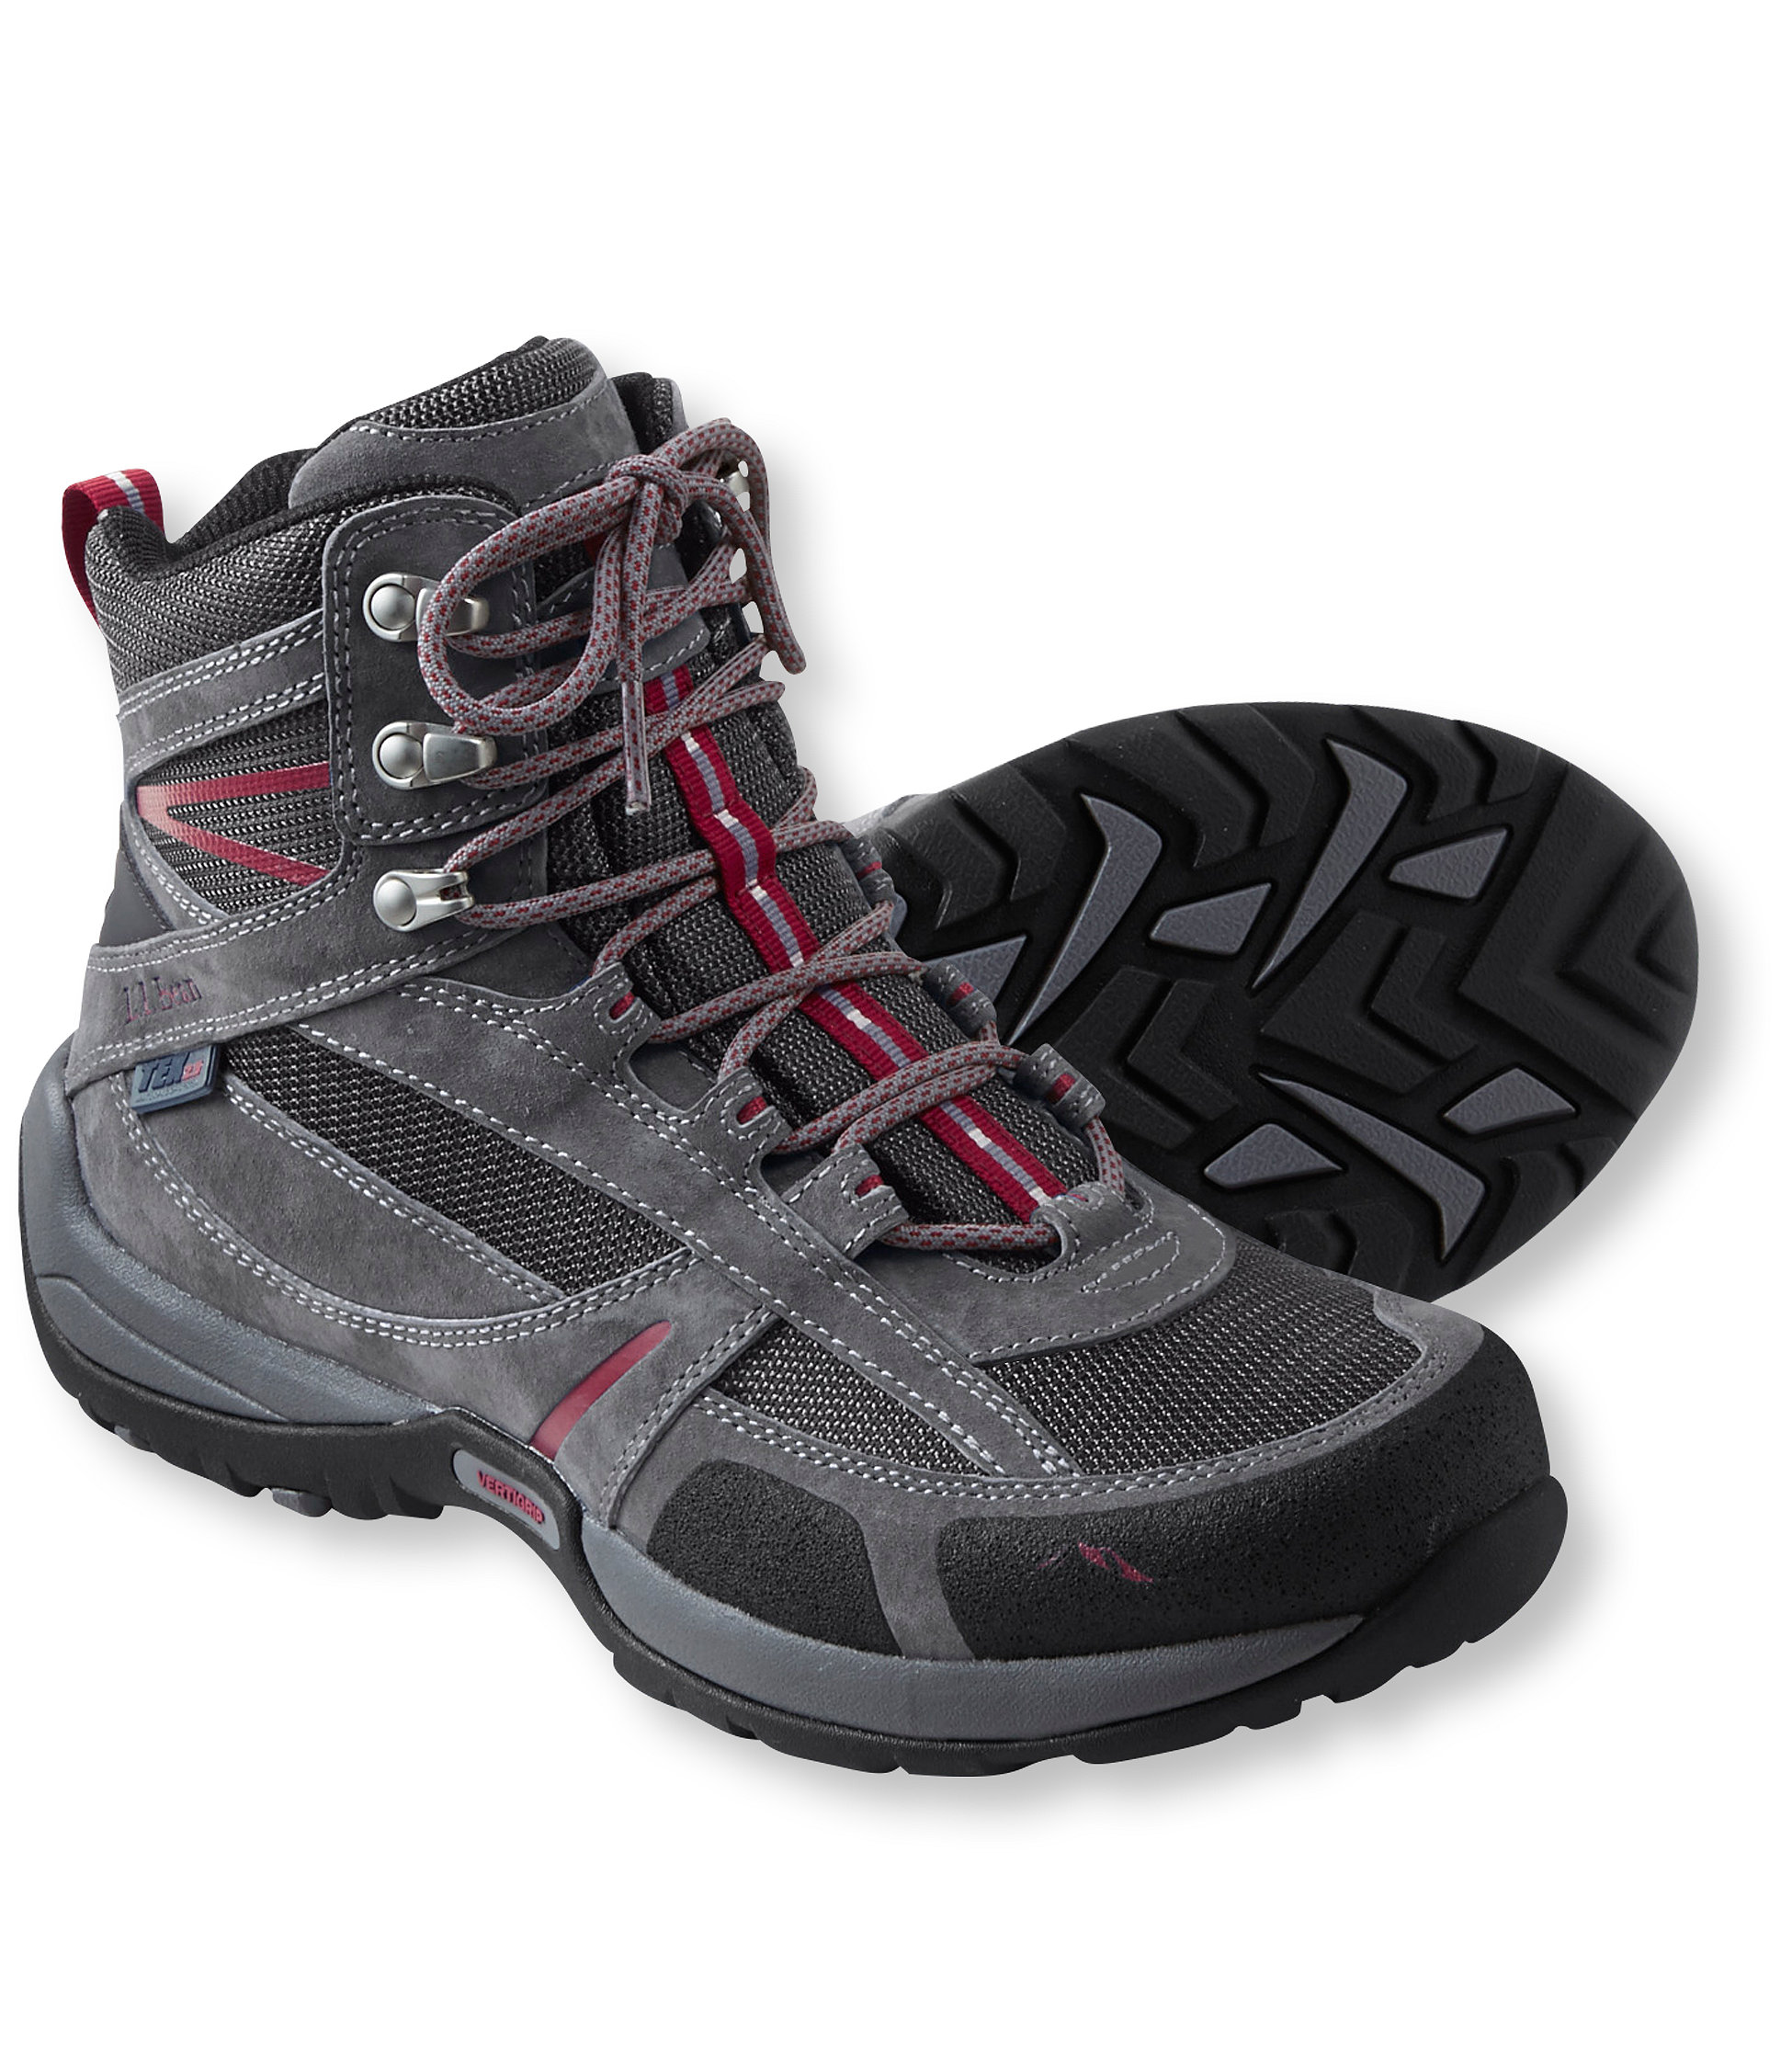 L.L.Bean Waterproof Trail Model Hikers, Mid-Cut